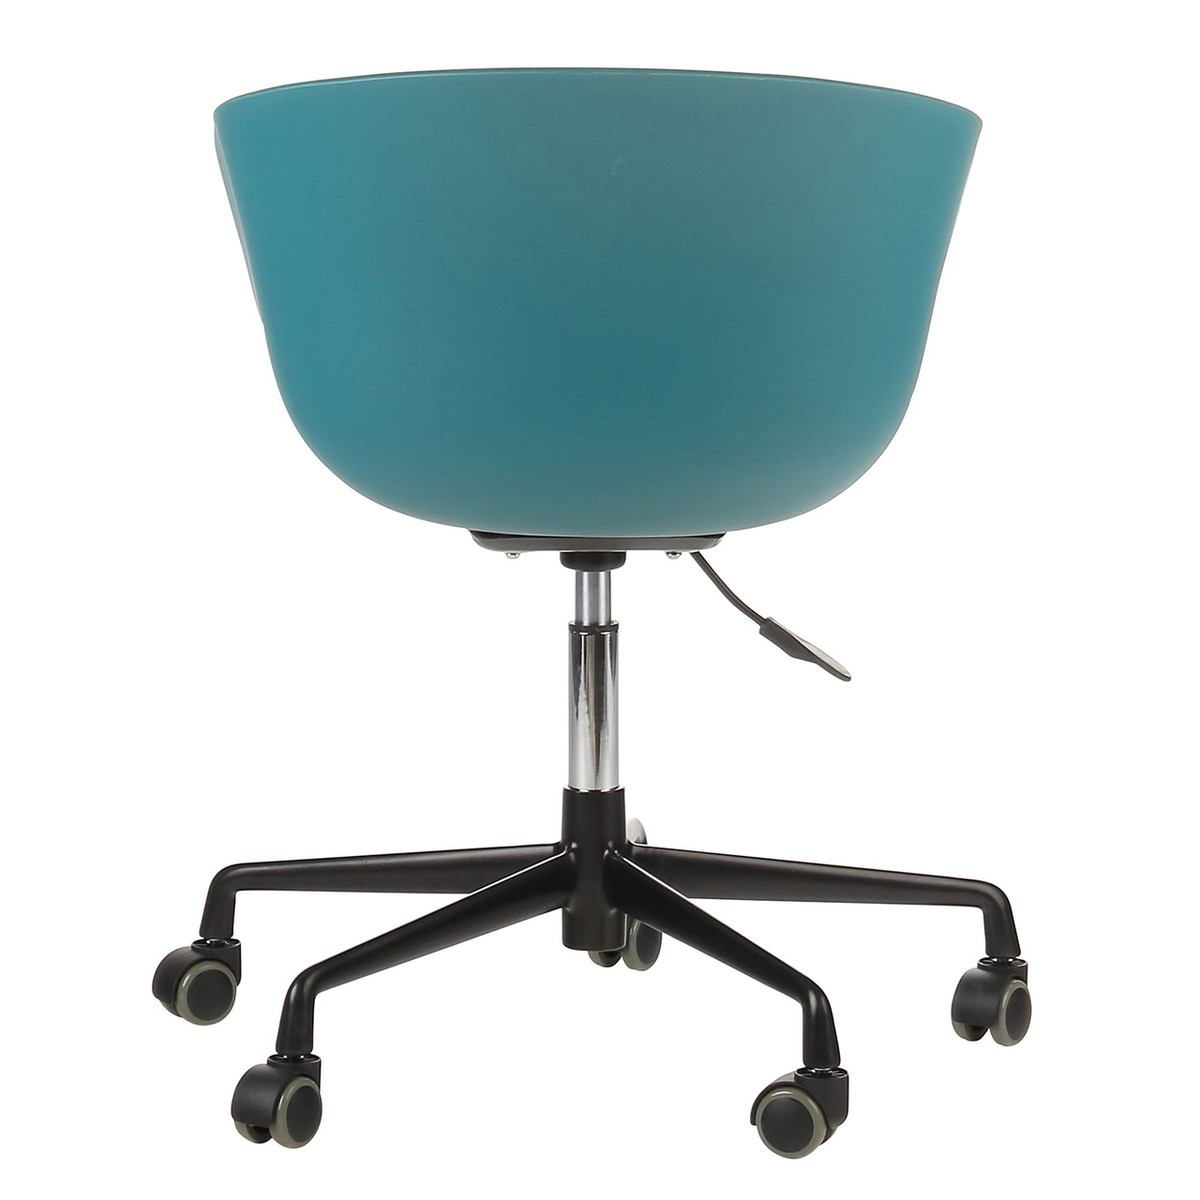 Danish Mid-Century Modern Teal Office Chair with Black Aluminum Frame